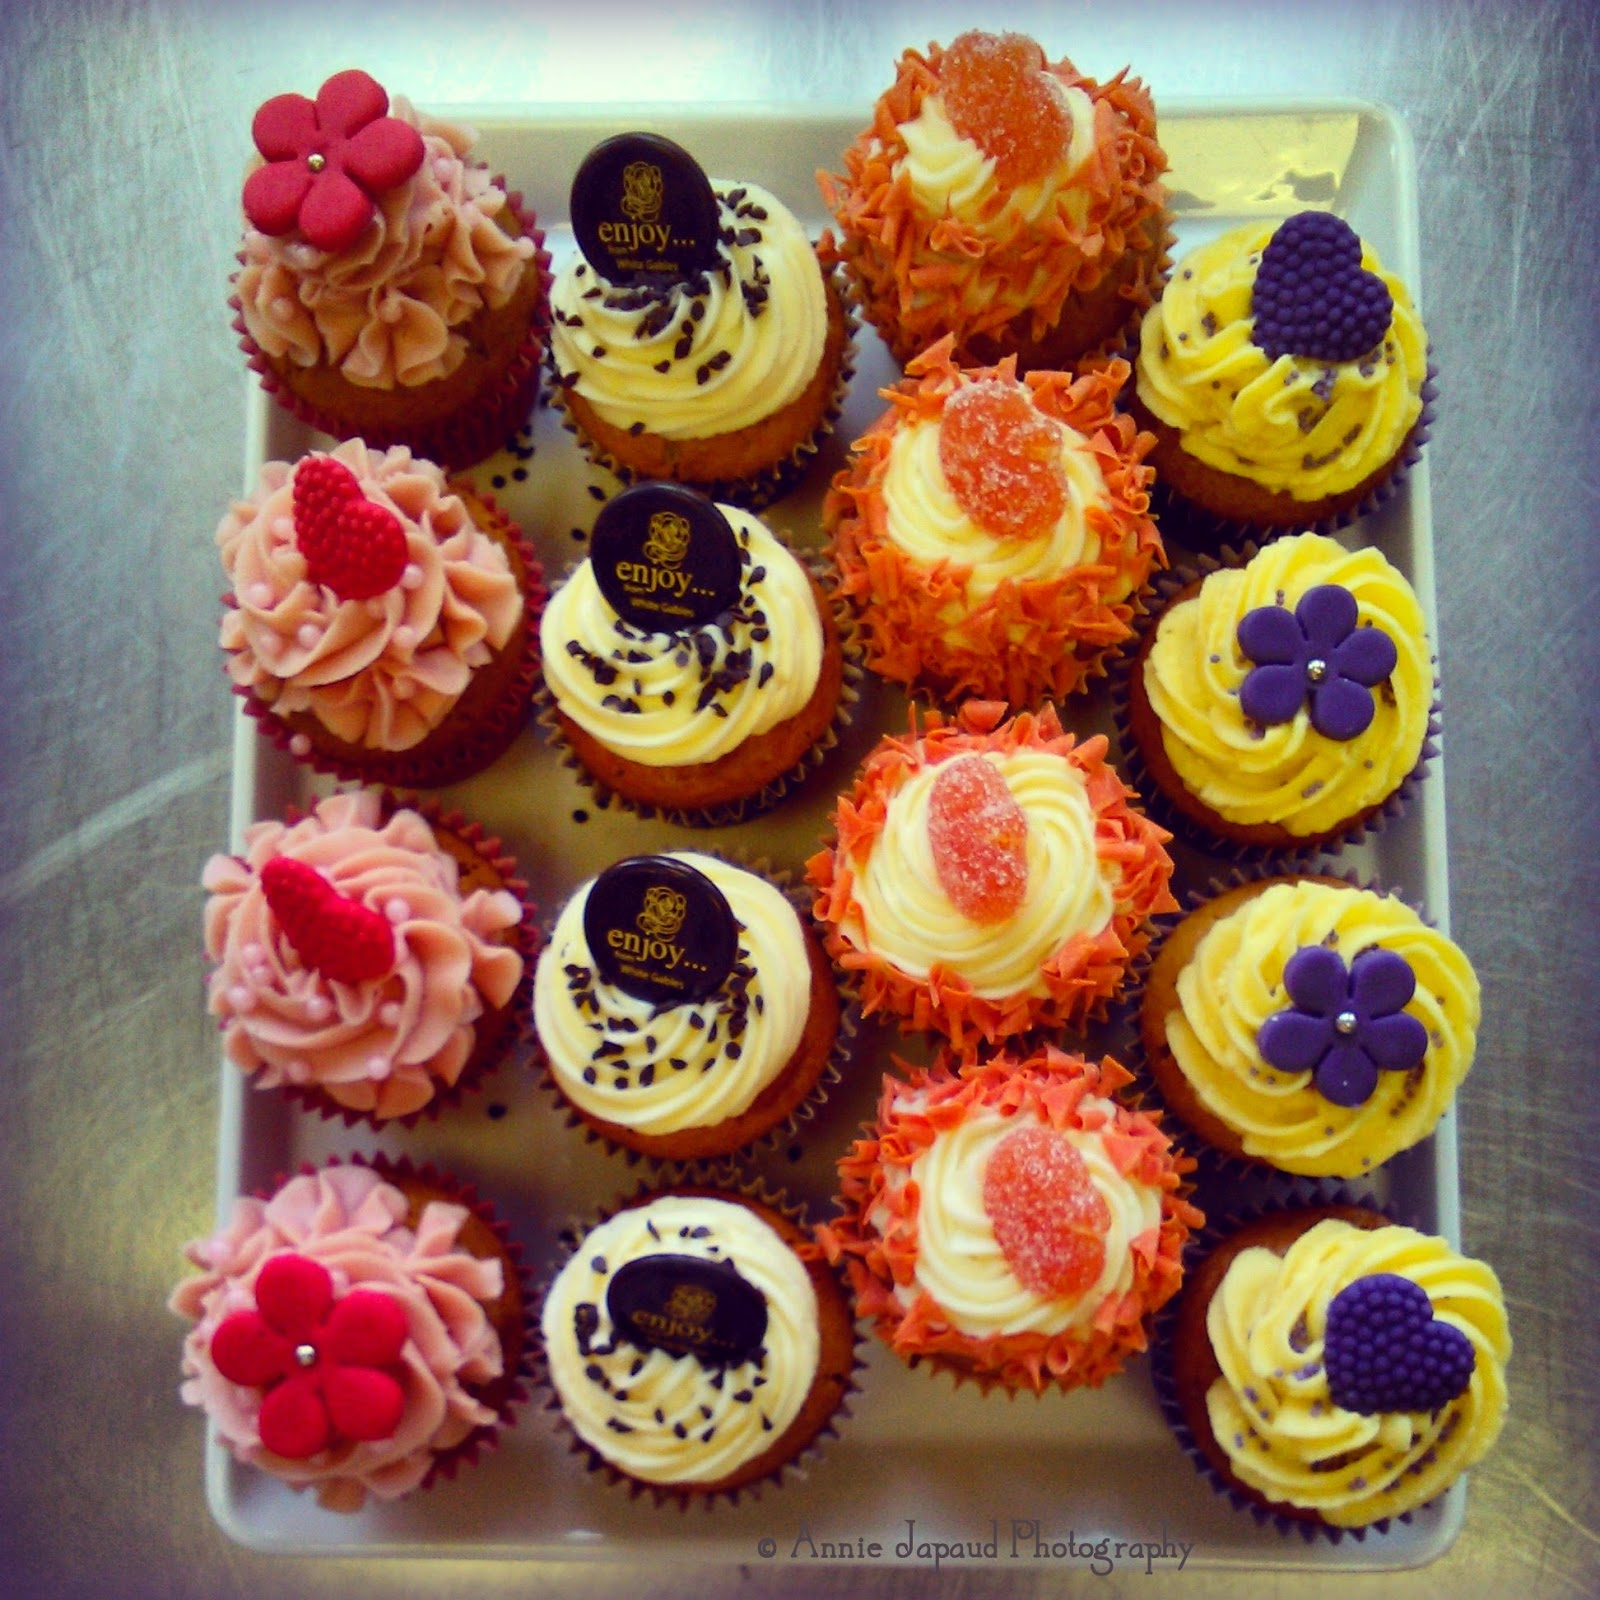 a plate of decorated cupcakes